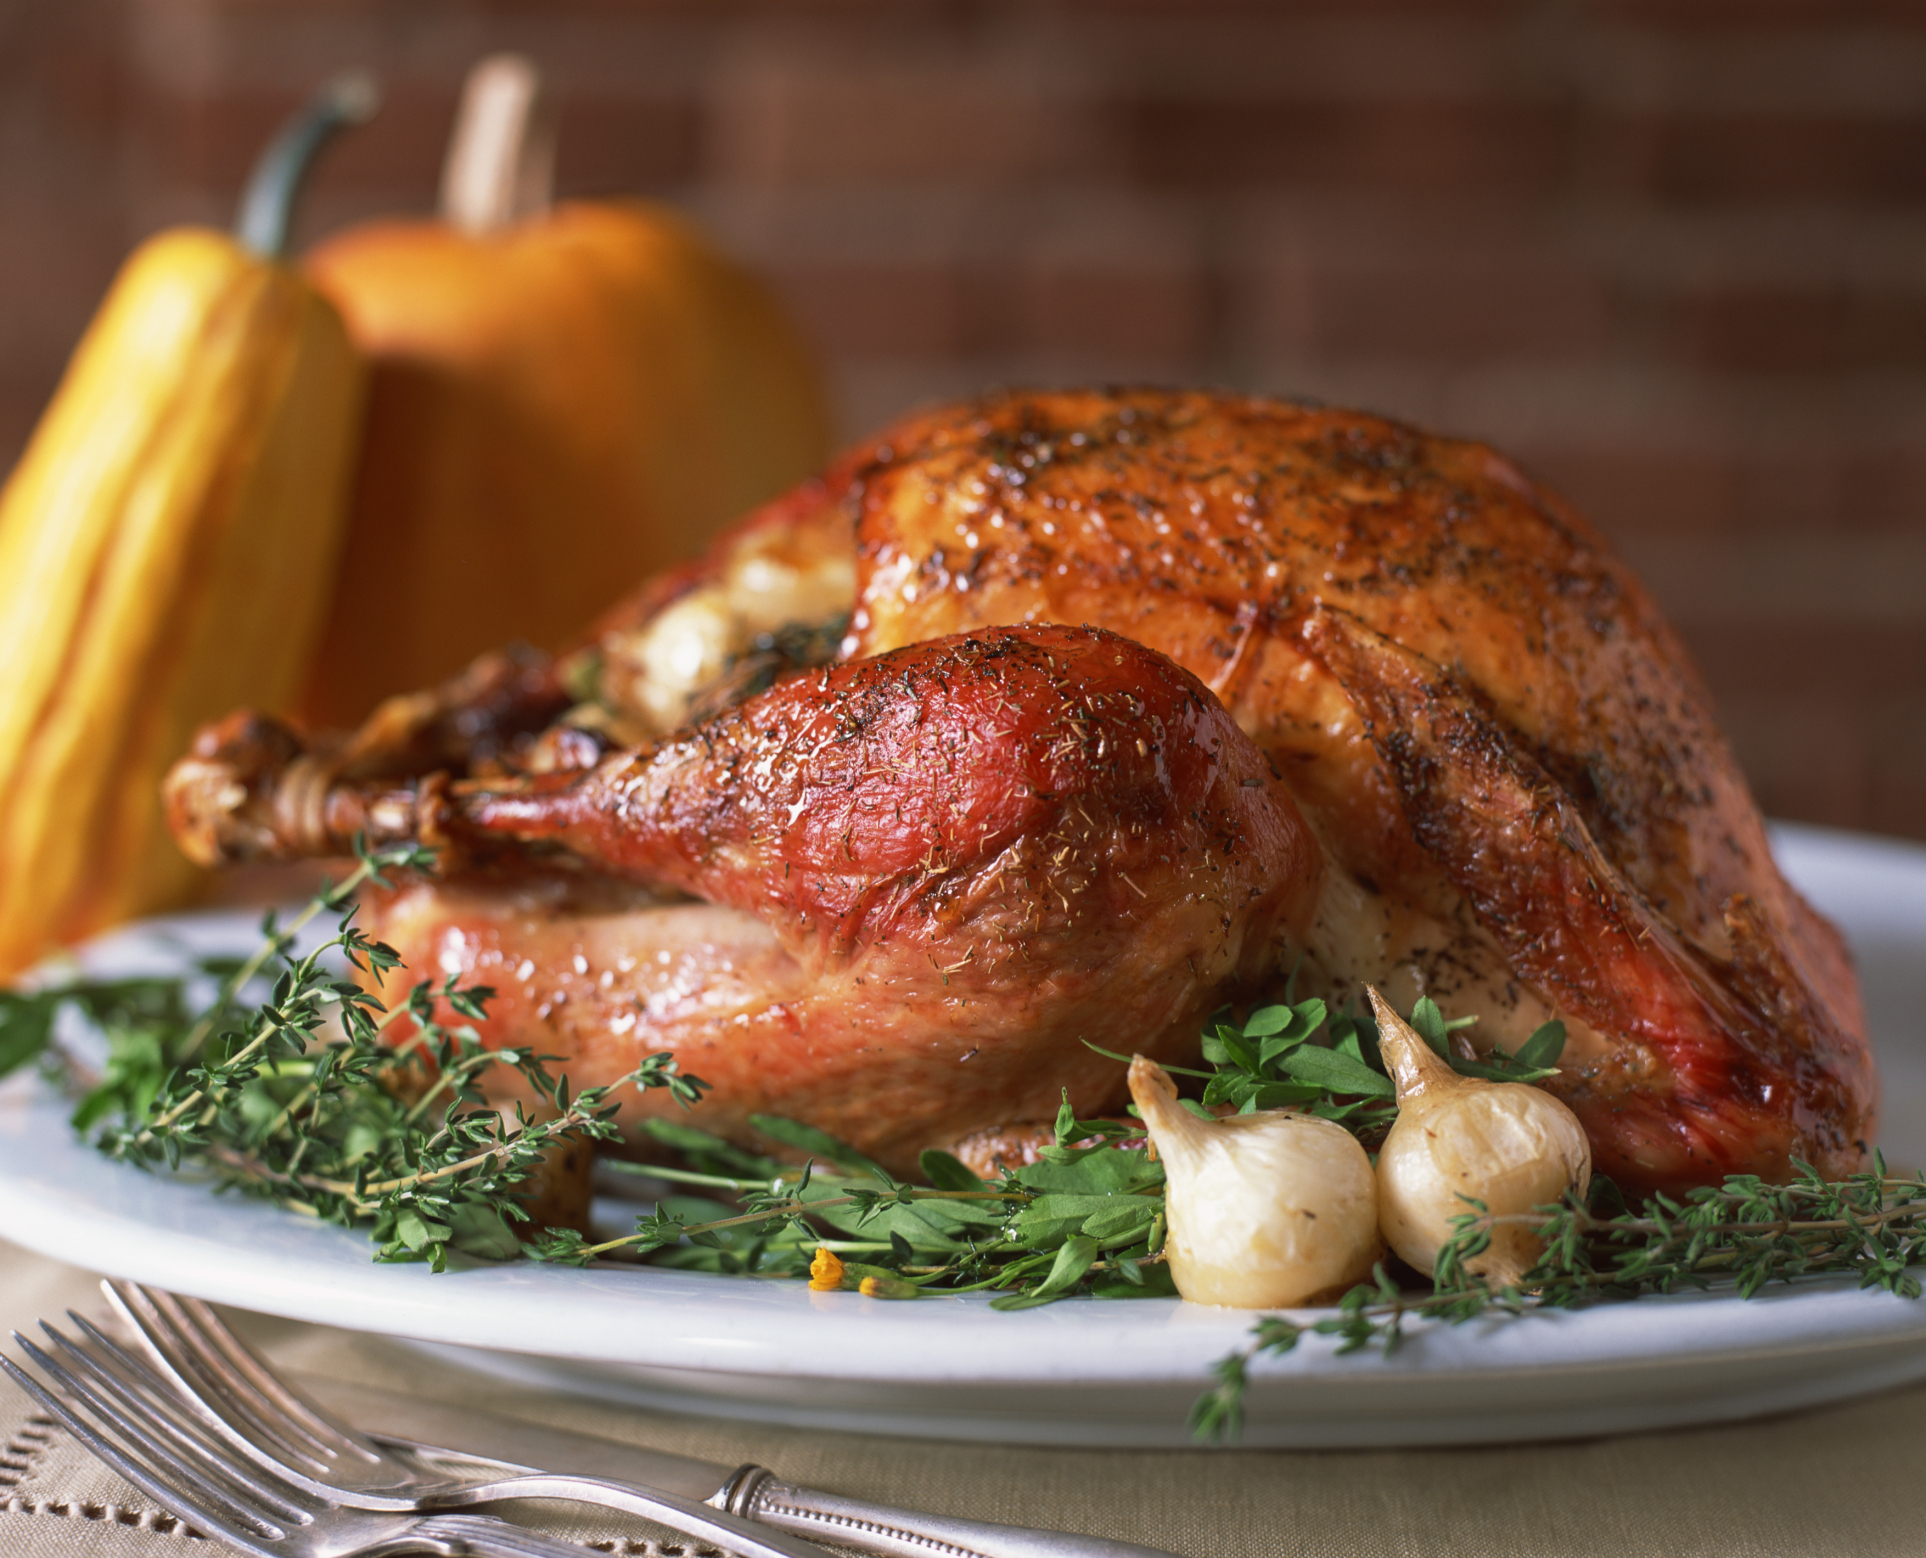 """It's been an honor serving you, Mr. President."" - Turkey (Thinkstock)"